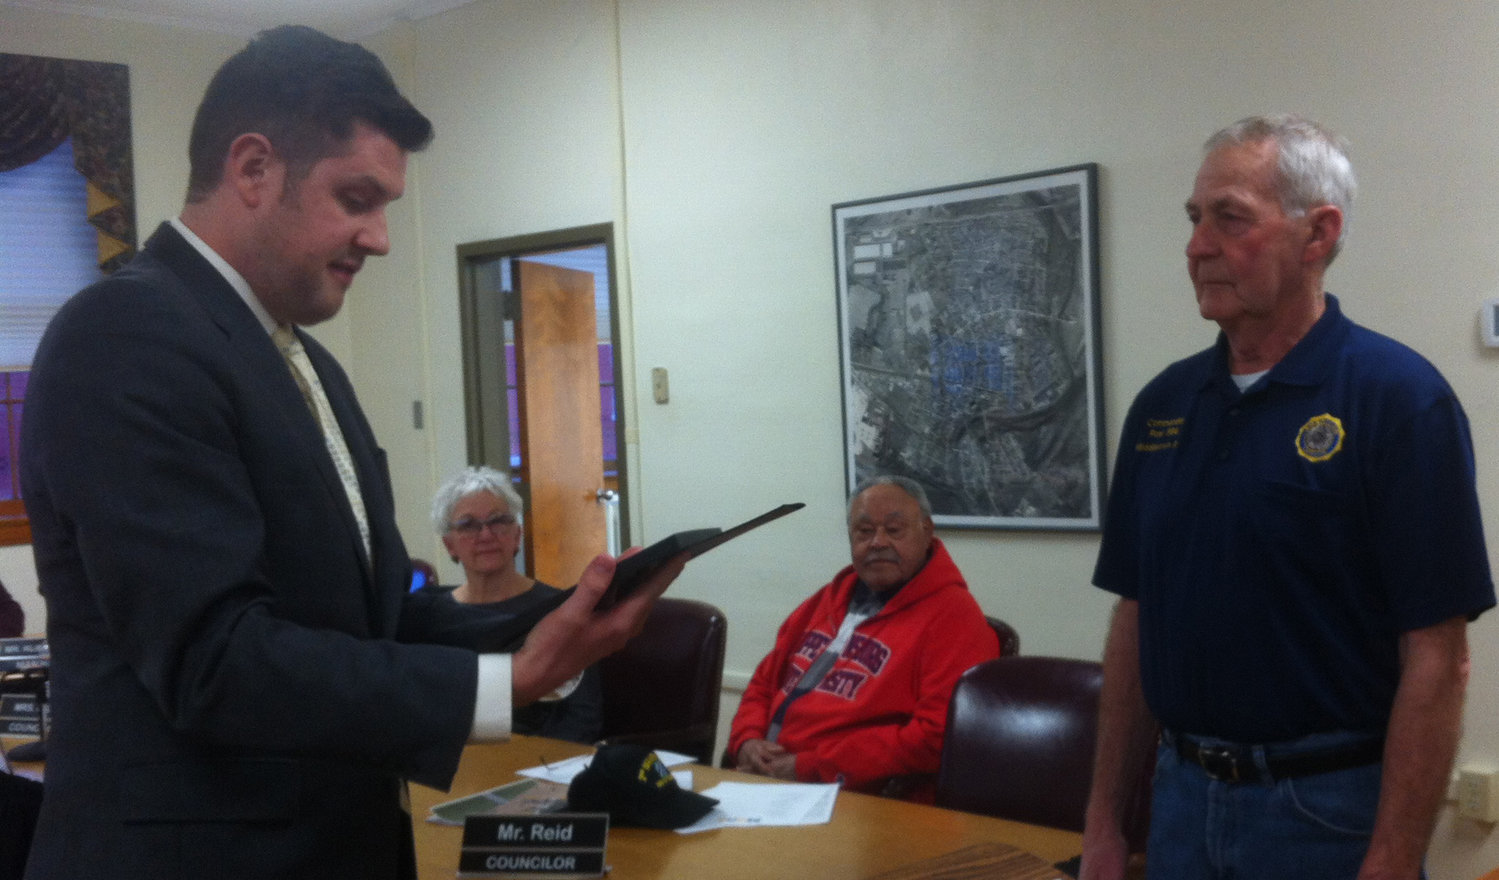 Mayor James H. Curry III reads the proclamation honoring the American Legion before presenting it to Post 594 Commander William Douglass at the start of the March 19 Middletown Borough Council meeting.